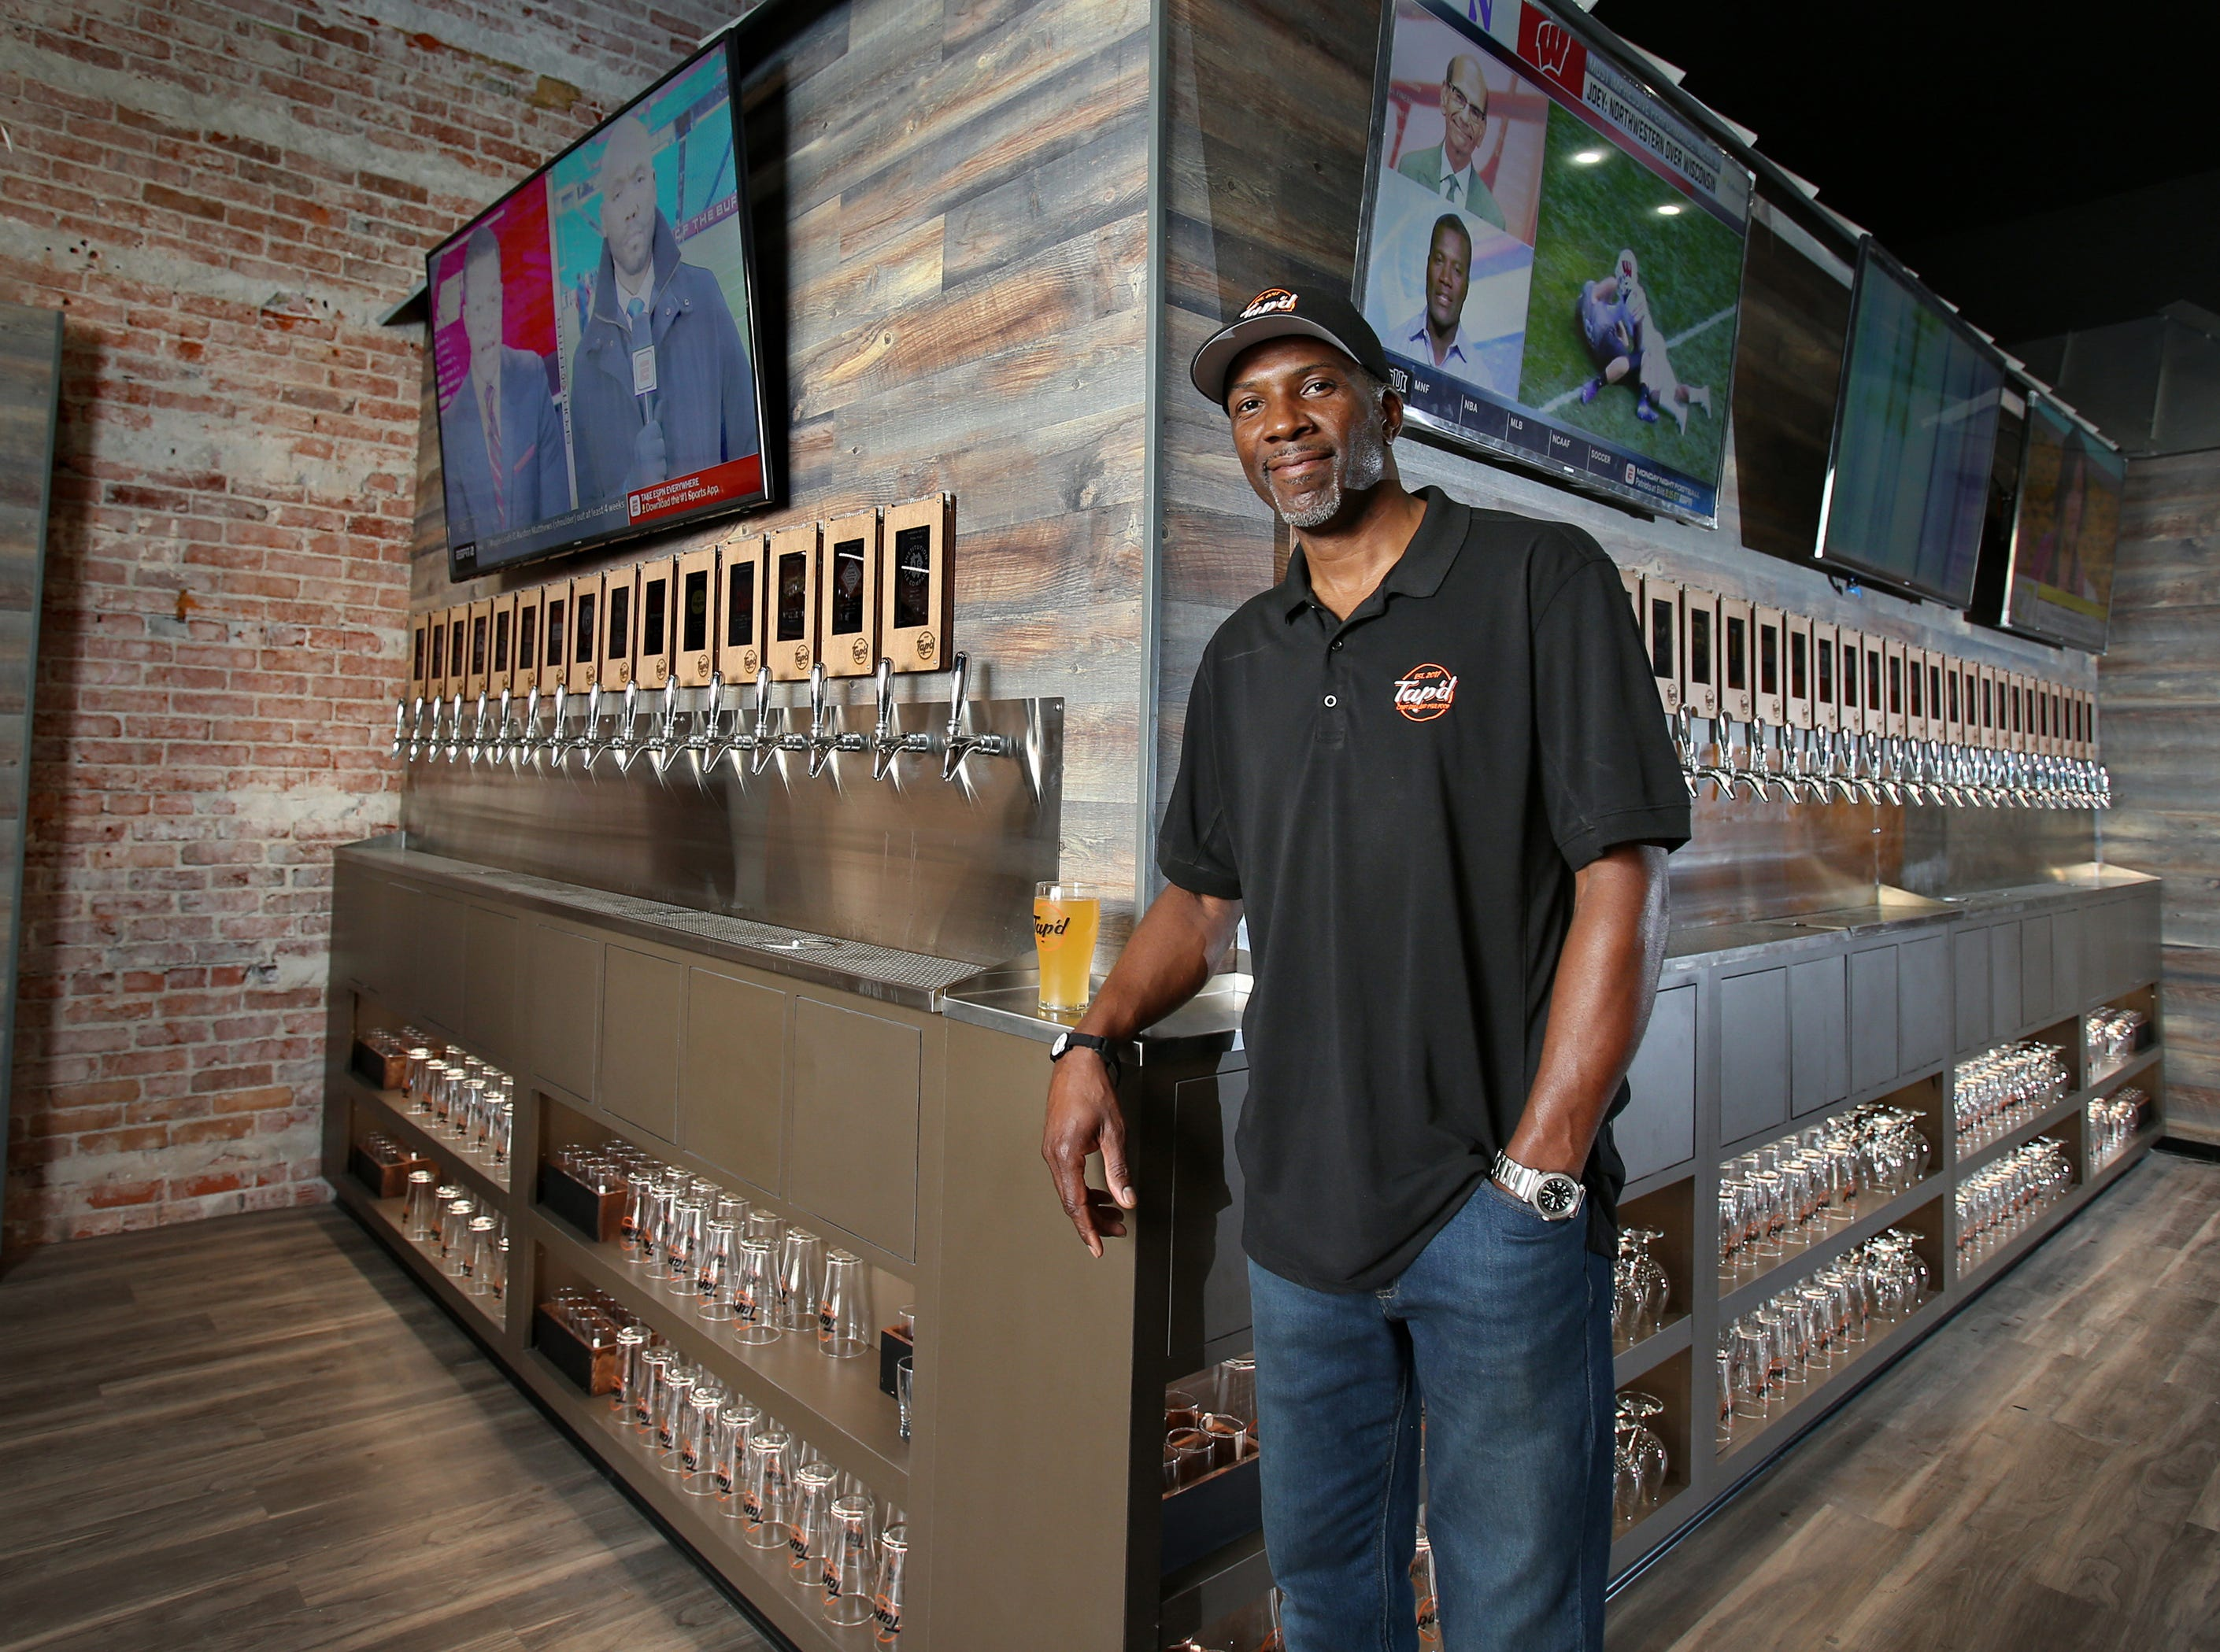 Robert Washington, CEO and co-owner of Tap'd Ventura, stands in front of the business' 43 taps. The Ventura site is the first in Ventura County to use the iPourIt system, which gives customers RIFB wristbands so they can activate taps for their chosen beverages.